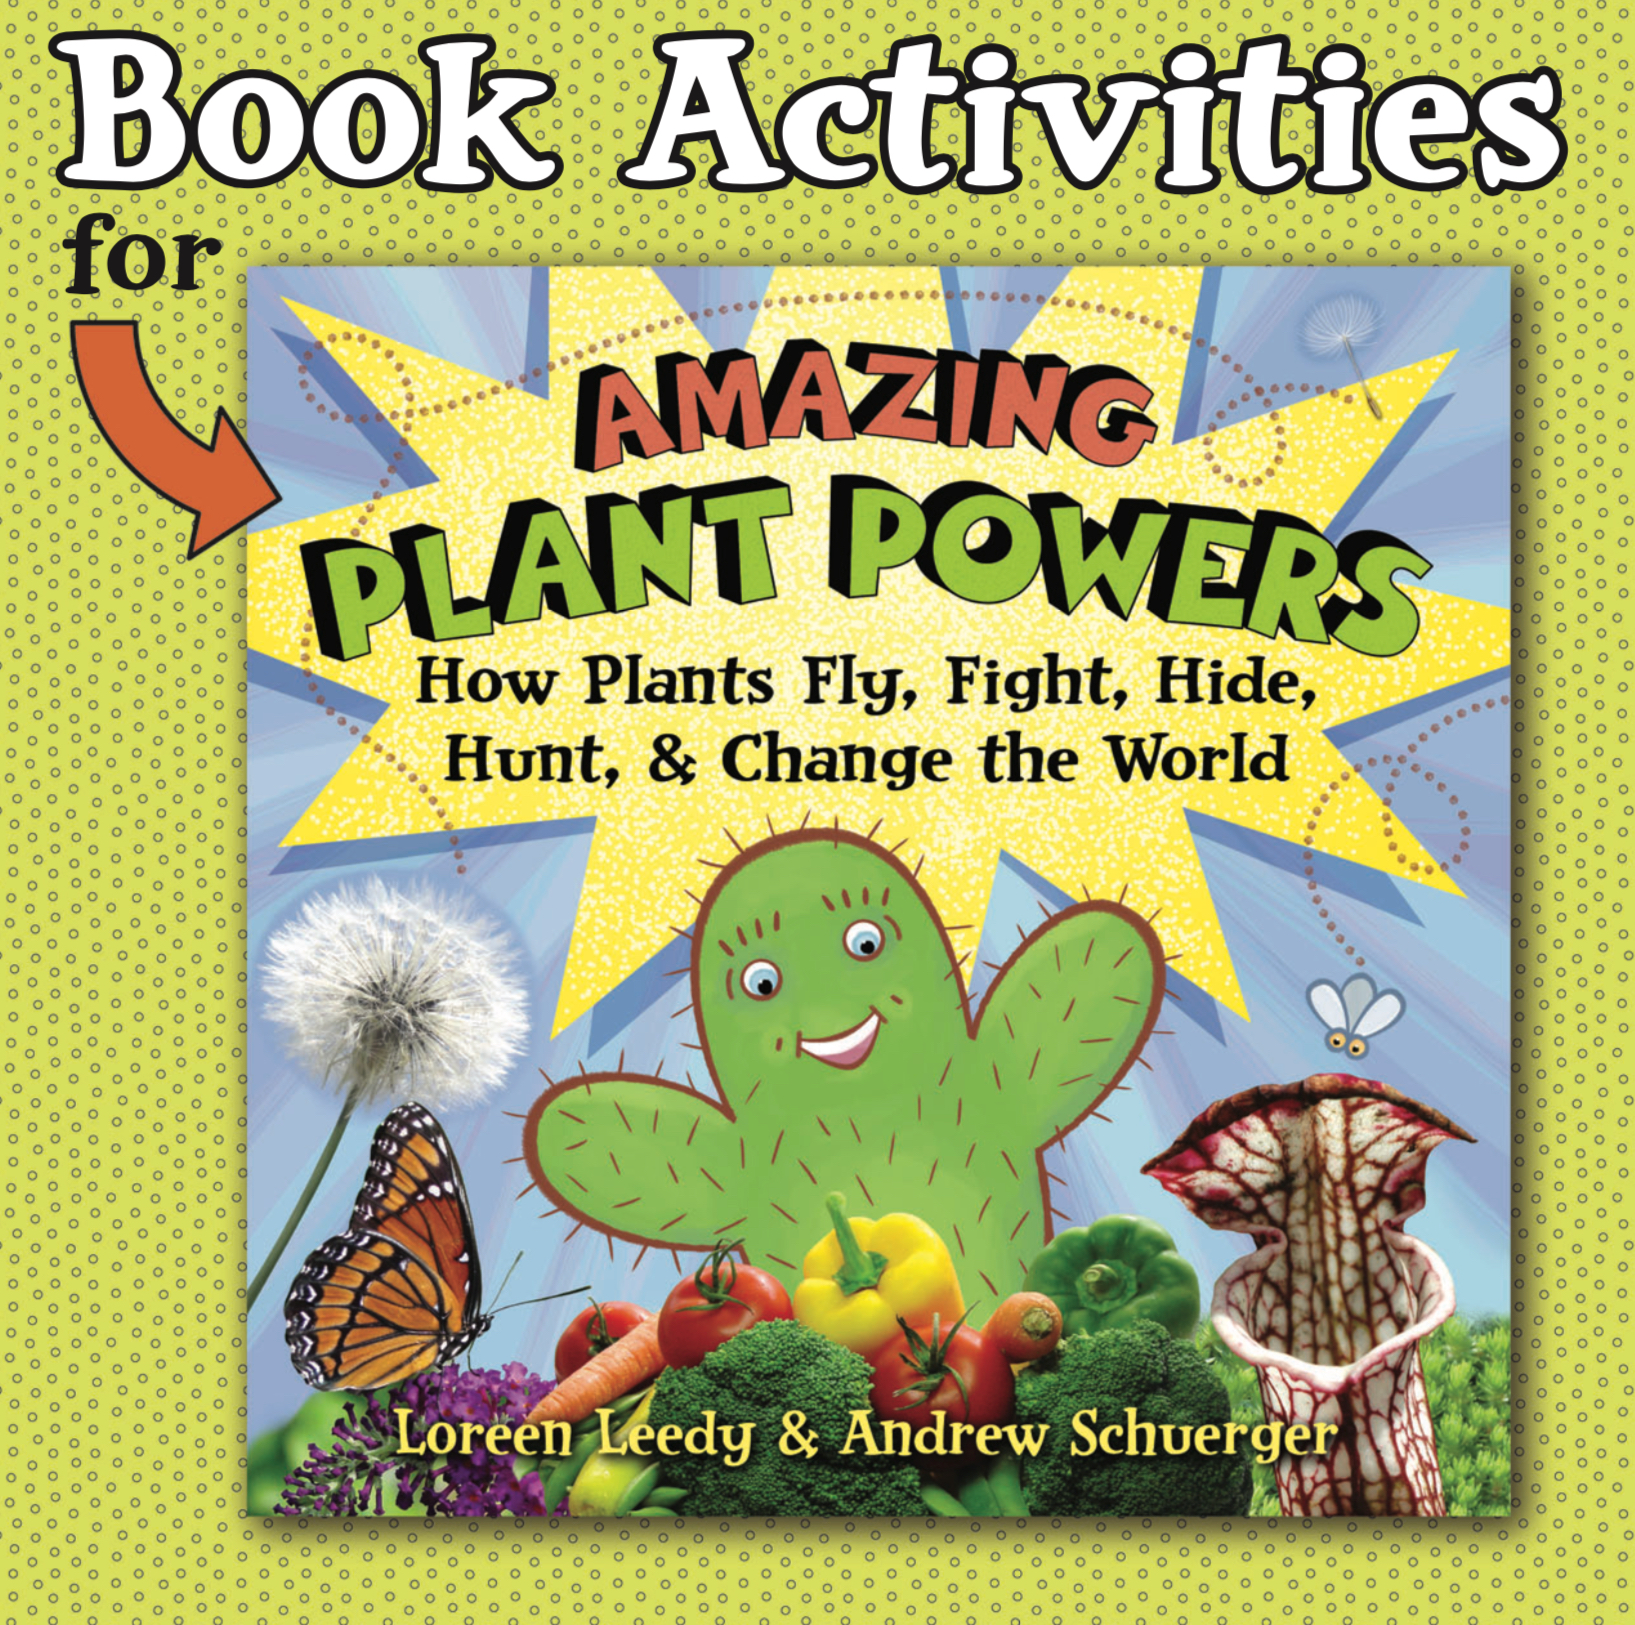 Click book cover image to get FREE activity pages in my TPT store.